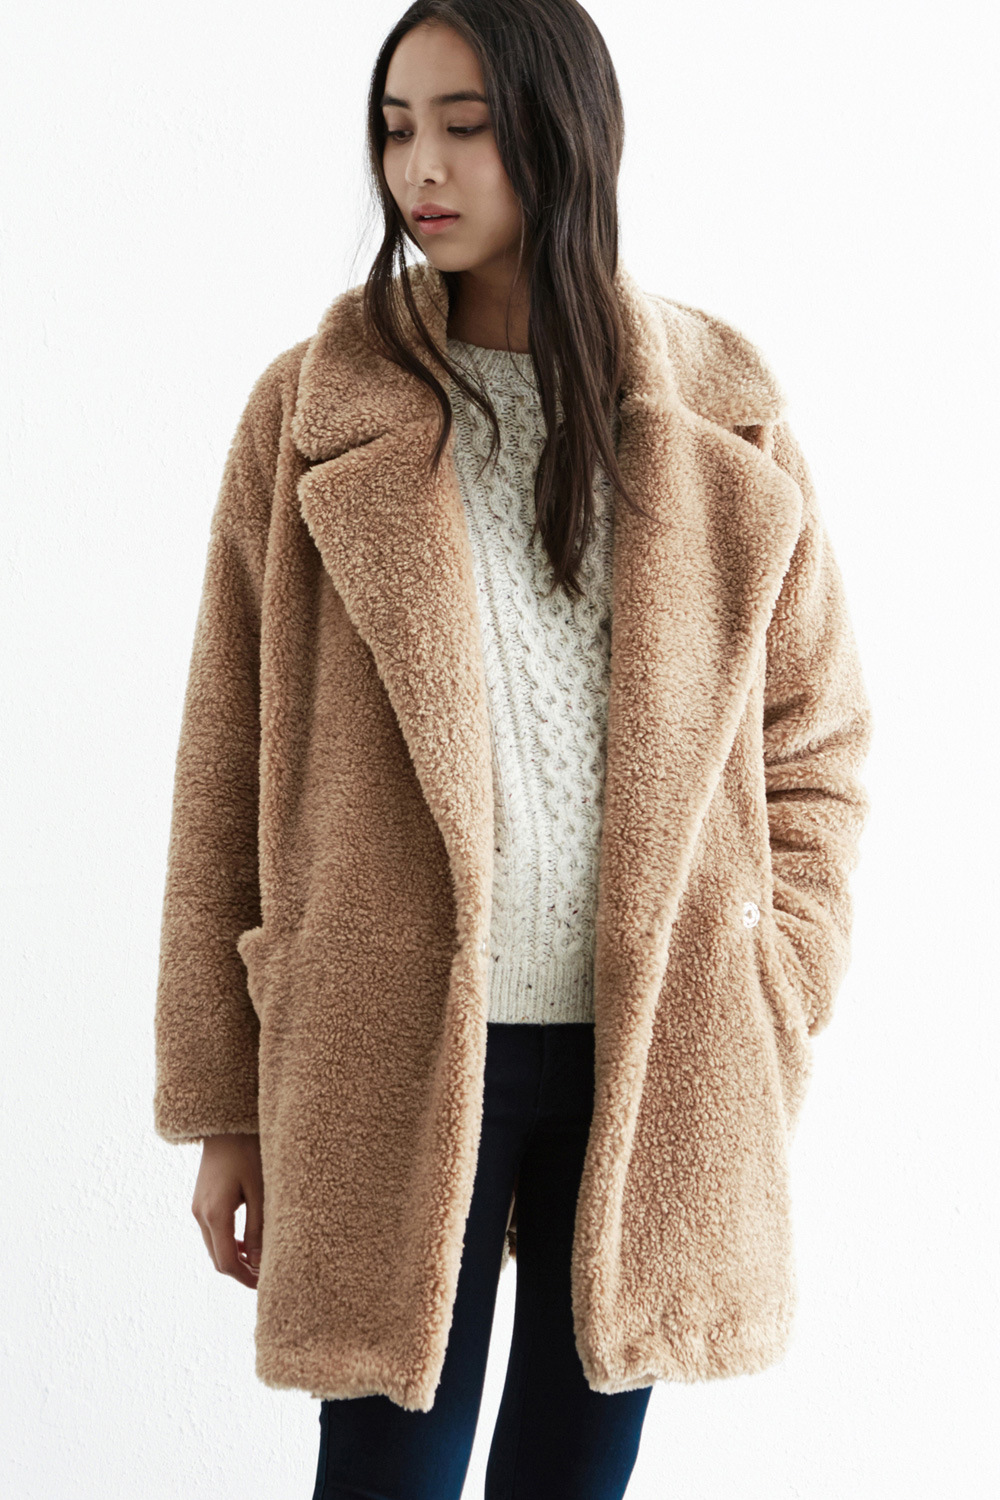 2015 new fashion autumn/winter women's casual street camel Long warm faux fur coat jacket lady Plus Size 14-16